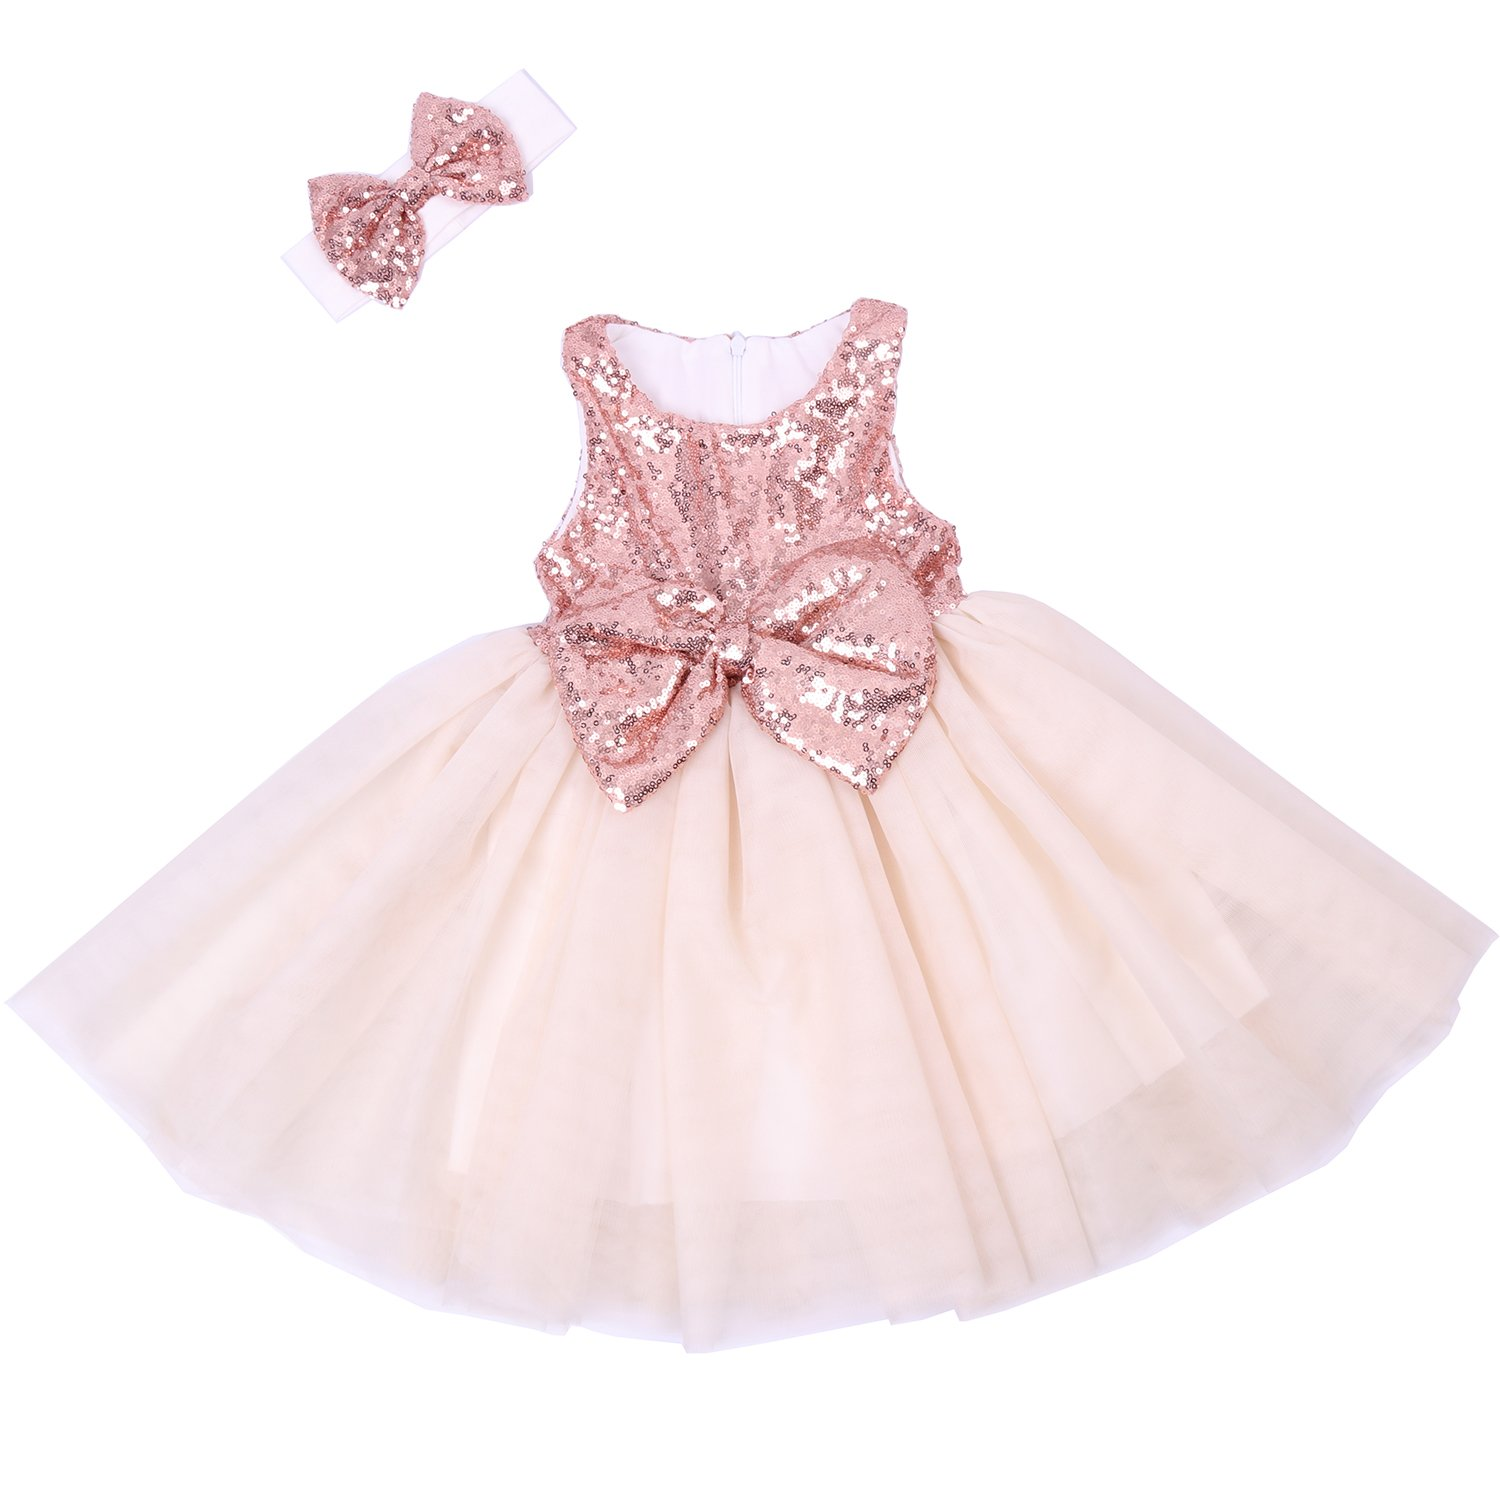 Cilucu Flower Girl Dresses Toddlers Sequin Party Dress Tutu Baby Prom Pageant Dresses Gown Kids Sleeveless Rose Gold/Offwhite 2T-3T